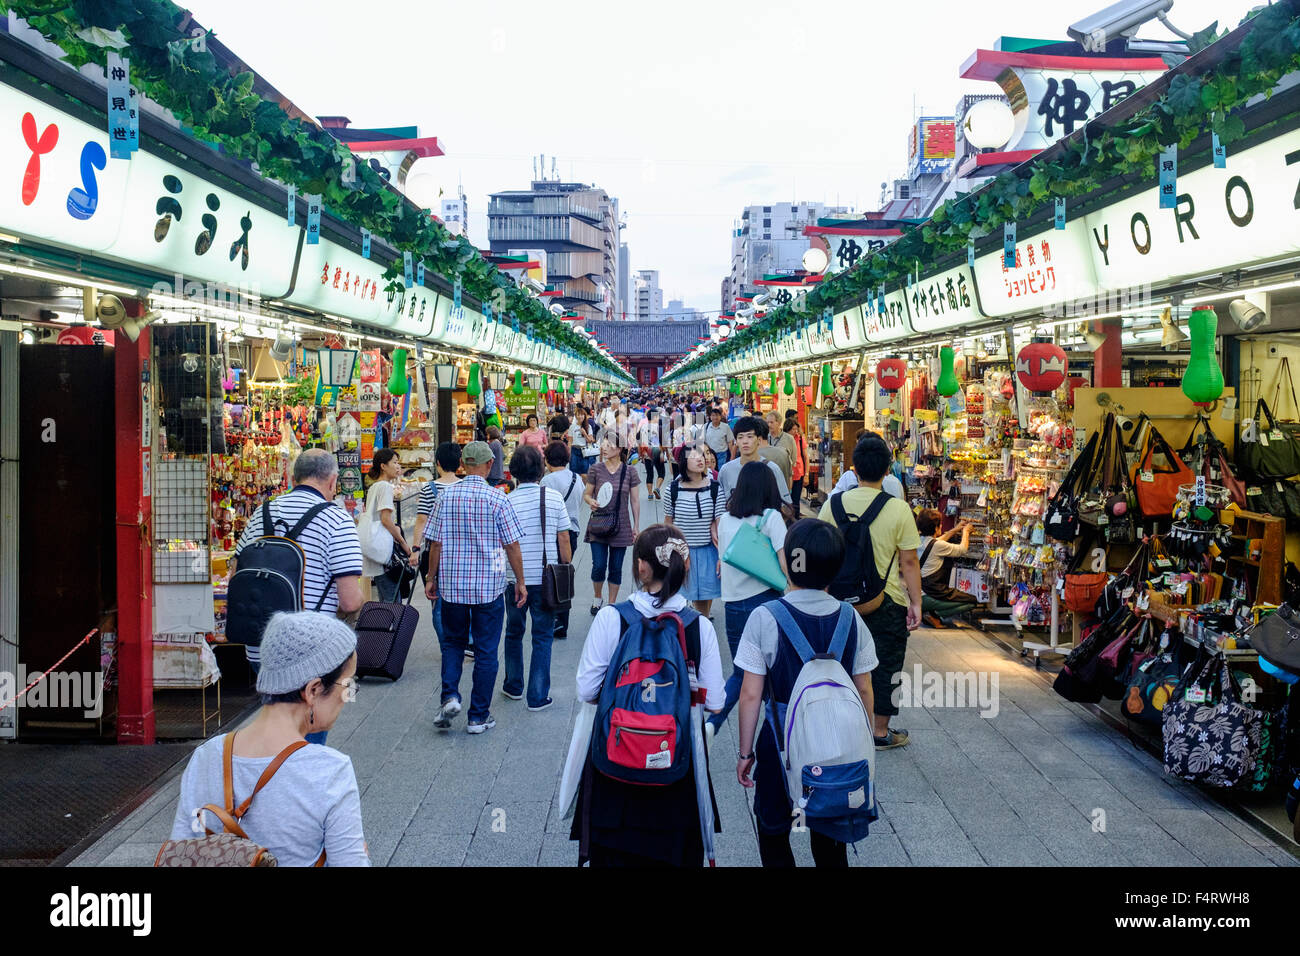 View along busy Nakamise Shopping Street at Sensoji Shrine in Asakusa district of Tokyo Japan - Stock Image